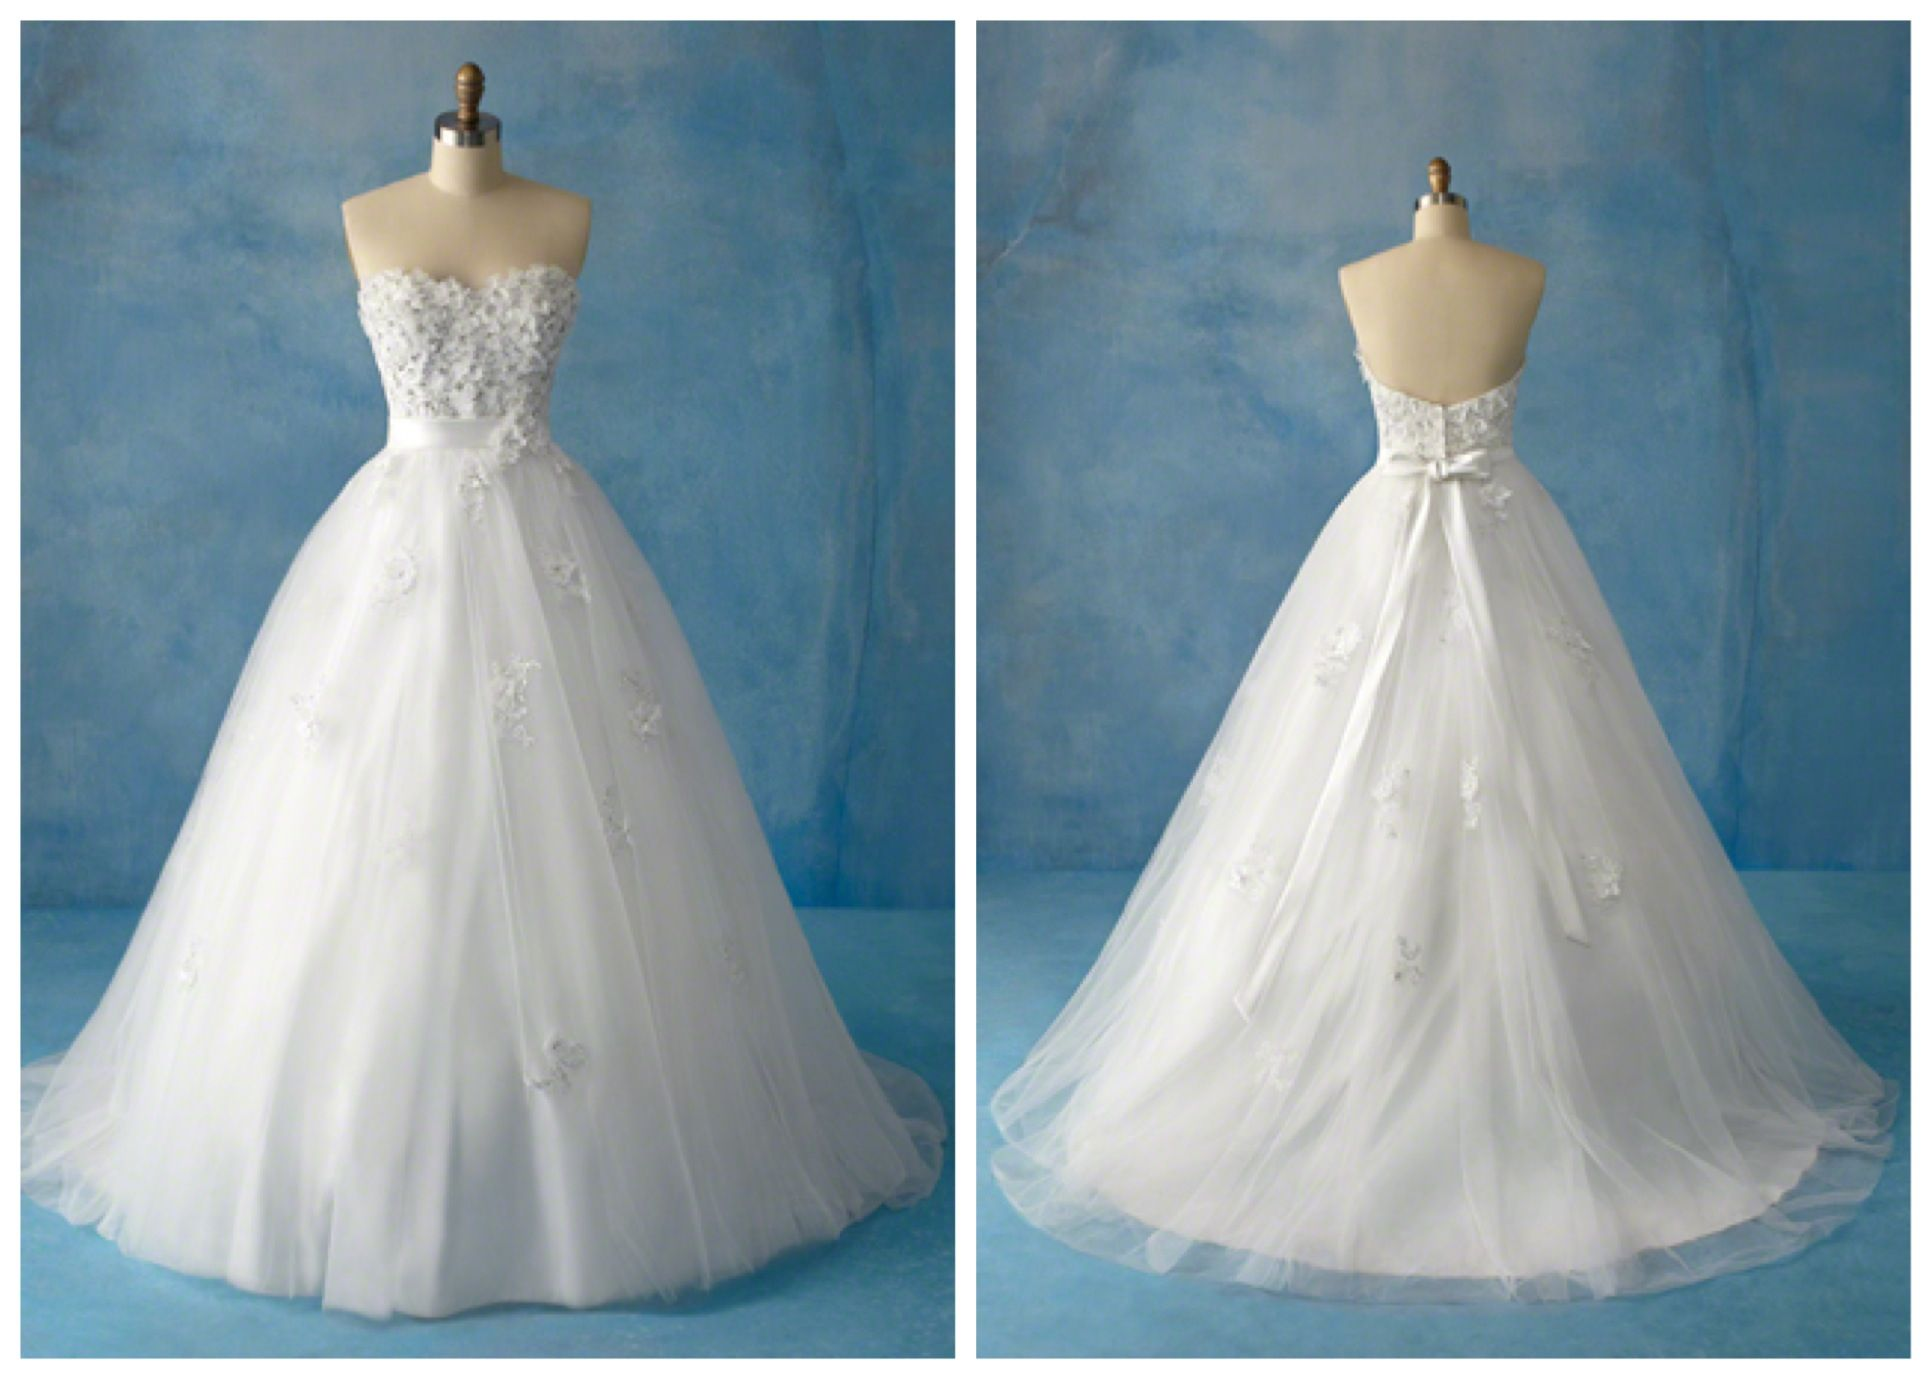 Disney snow white wedding dress for that special day disney snow white wedding dress junglespirit Image collections